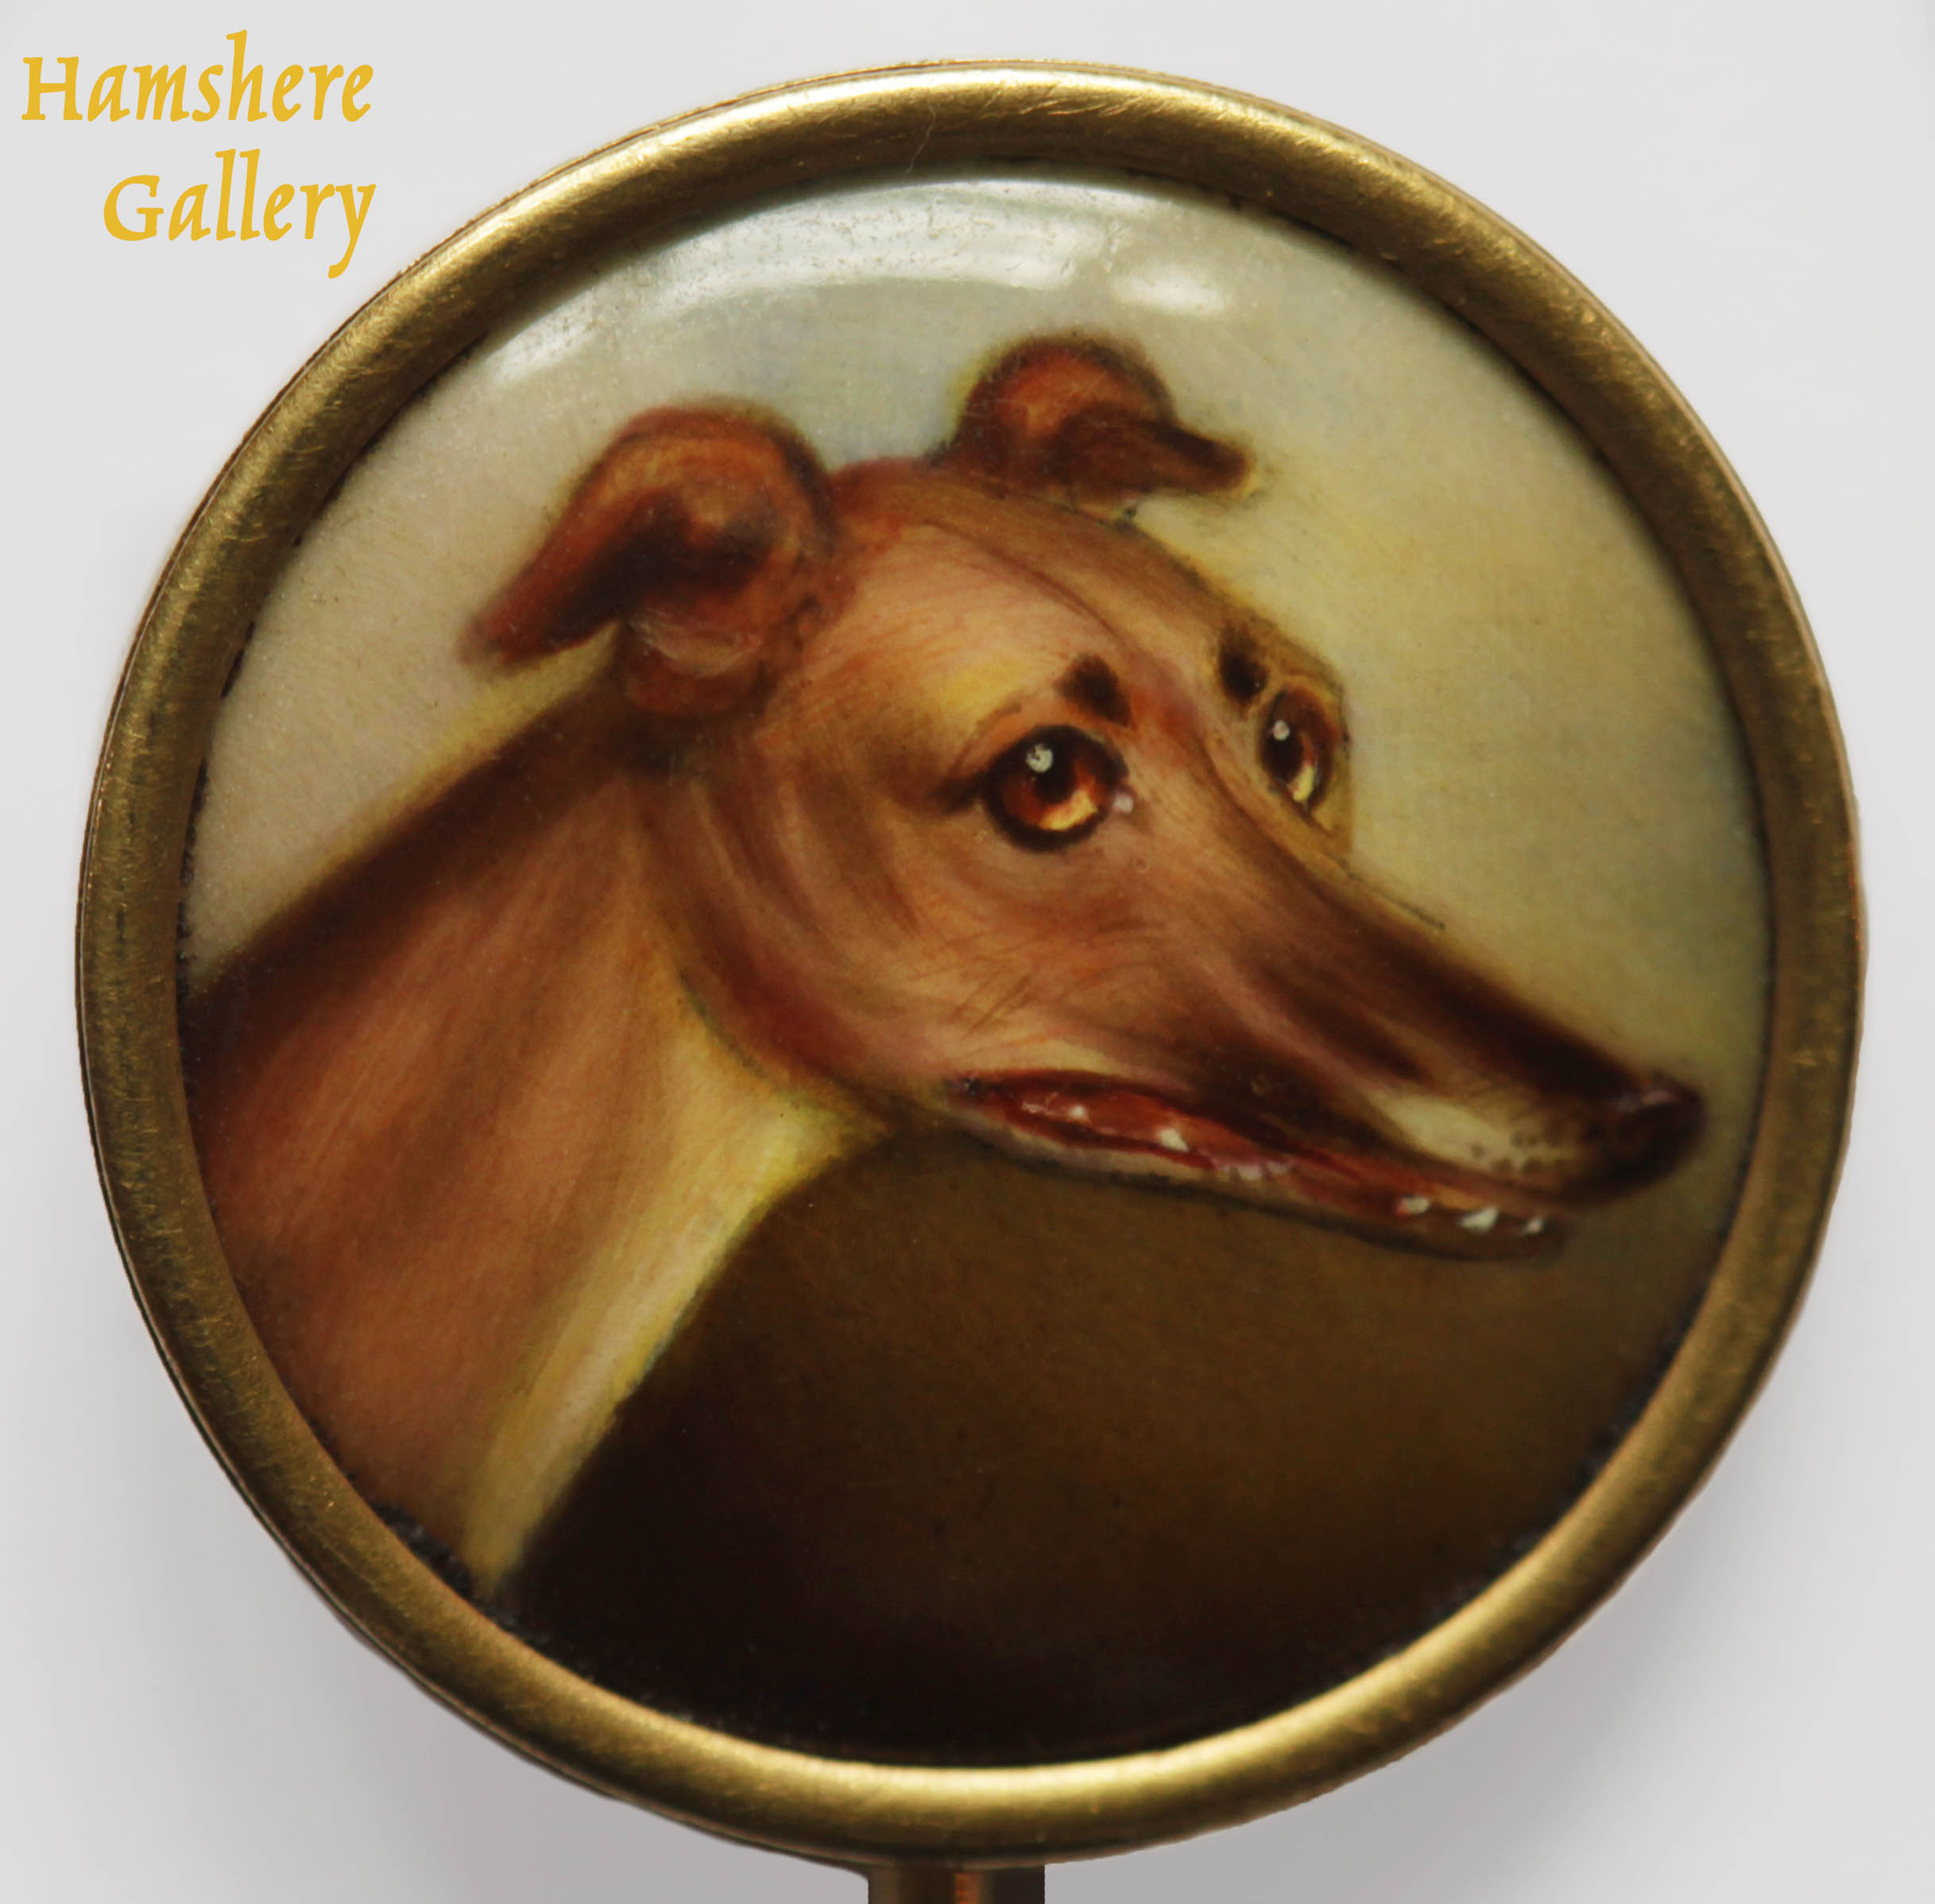 Click for larger image: Gold mounted enamel stick pin of a champion Greyhound by James (John) William Bailey (English, 1831-1914) - Gold mounted enamel stick pin of a champion Greyhound by James (John) William Bailey (English, 1831-1914)